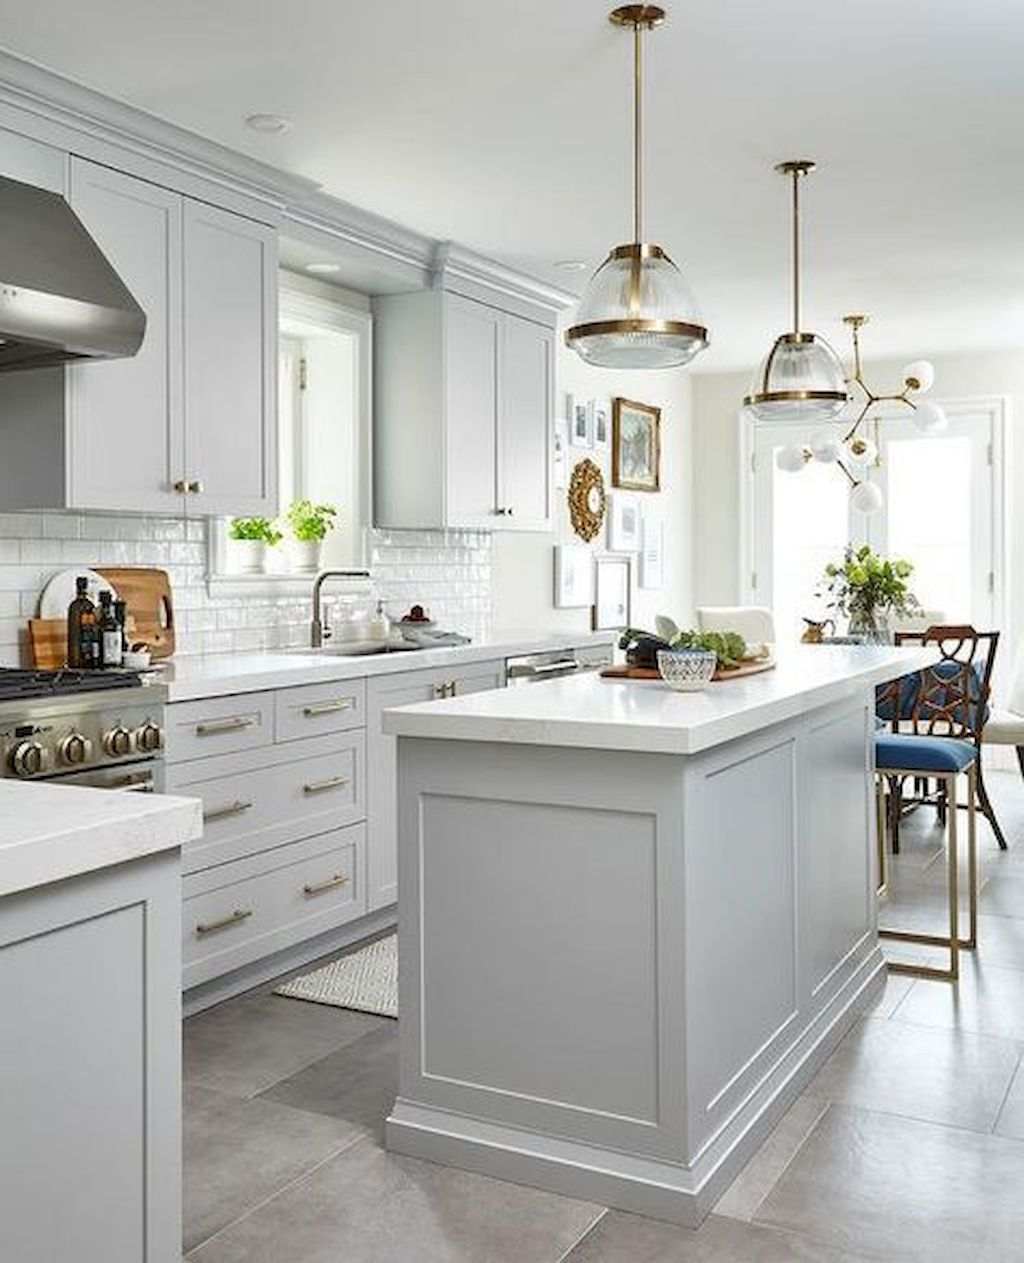 Bright Kitchen with White Kitchen Concept that Never Look Boring Part 5